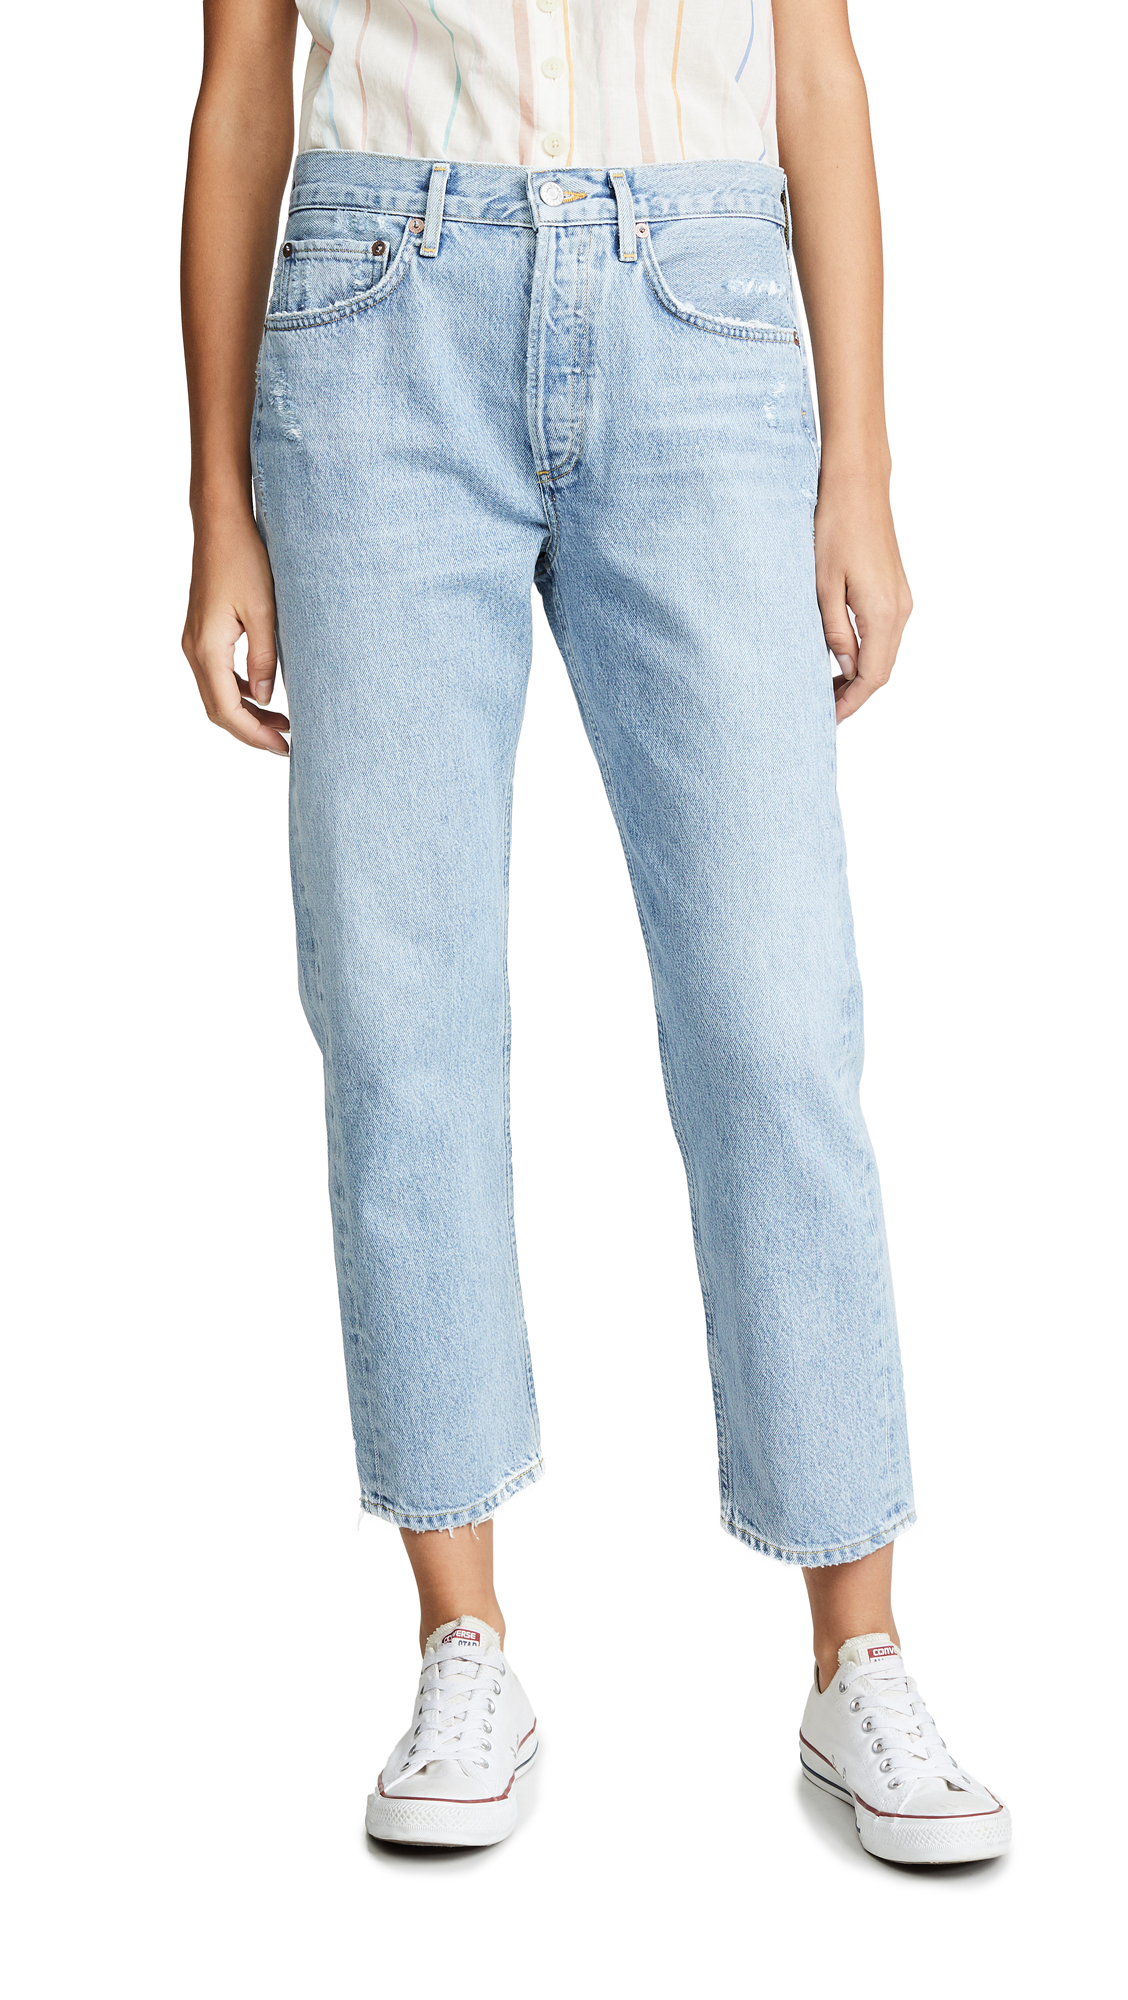 AGOLDE Easy Straight Parker Jeans - Swapmeet